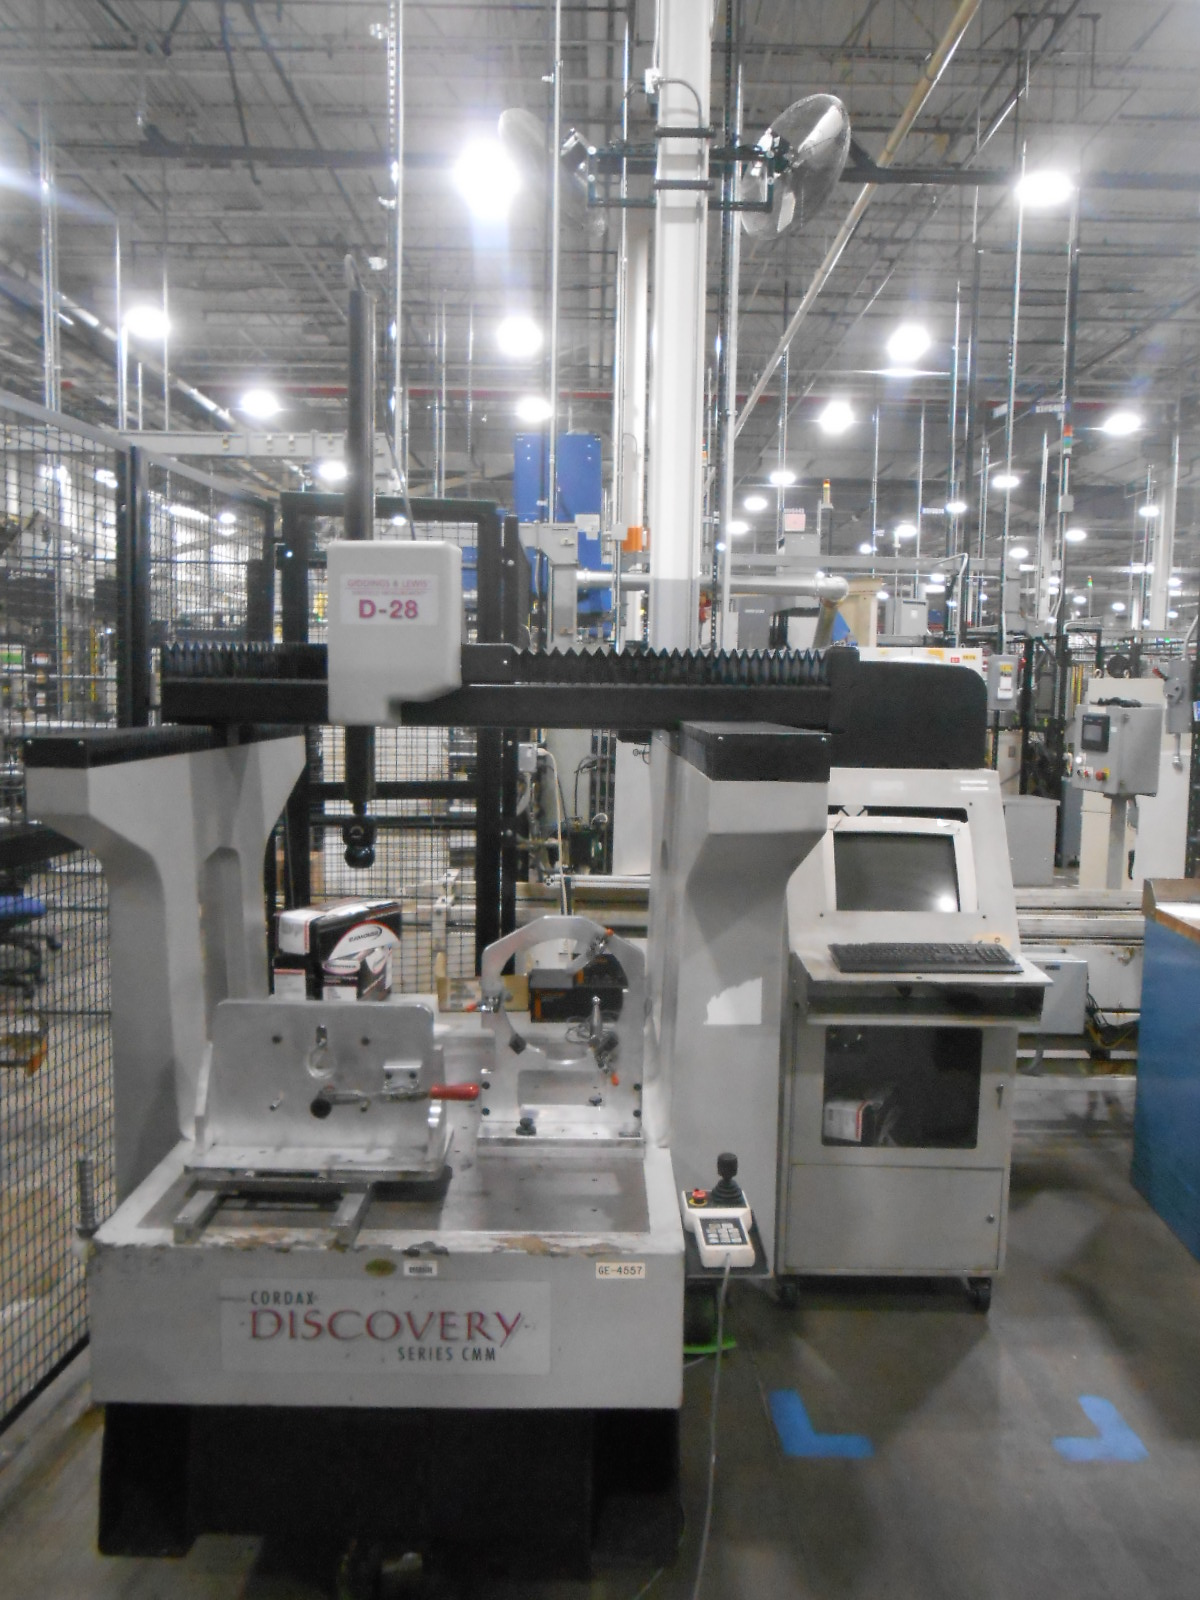 """Sheffield Discovery D28, 2000; 30""""x36""""x20"""", PH10T Probe, PHC10-2 Controller, PI200 Interface, CMM Manager"""